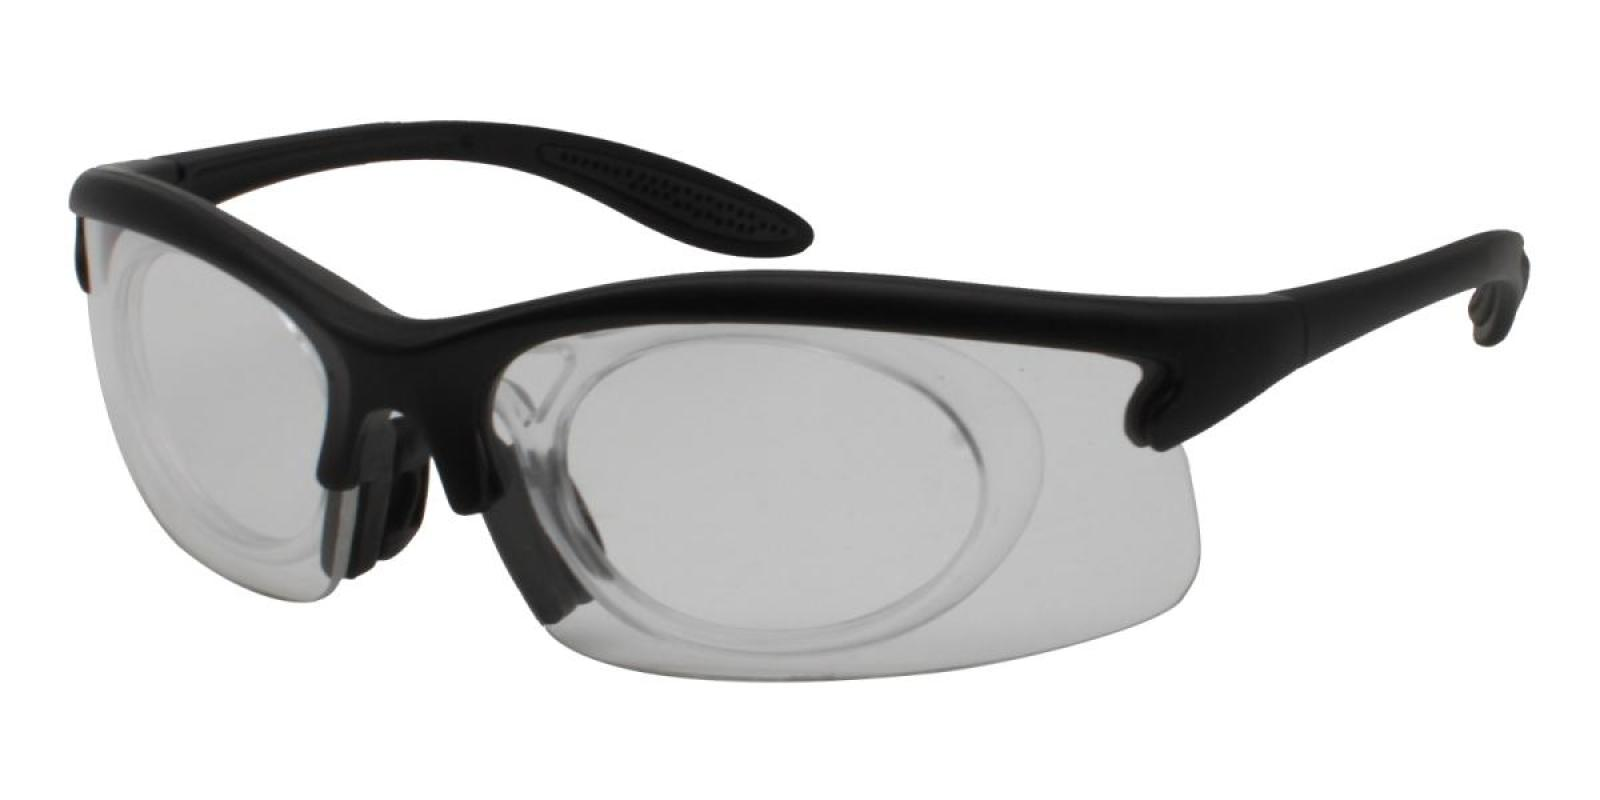 Borneo-Black-Square-Plastic-SportsGlasses-additional1